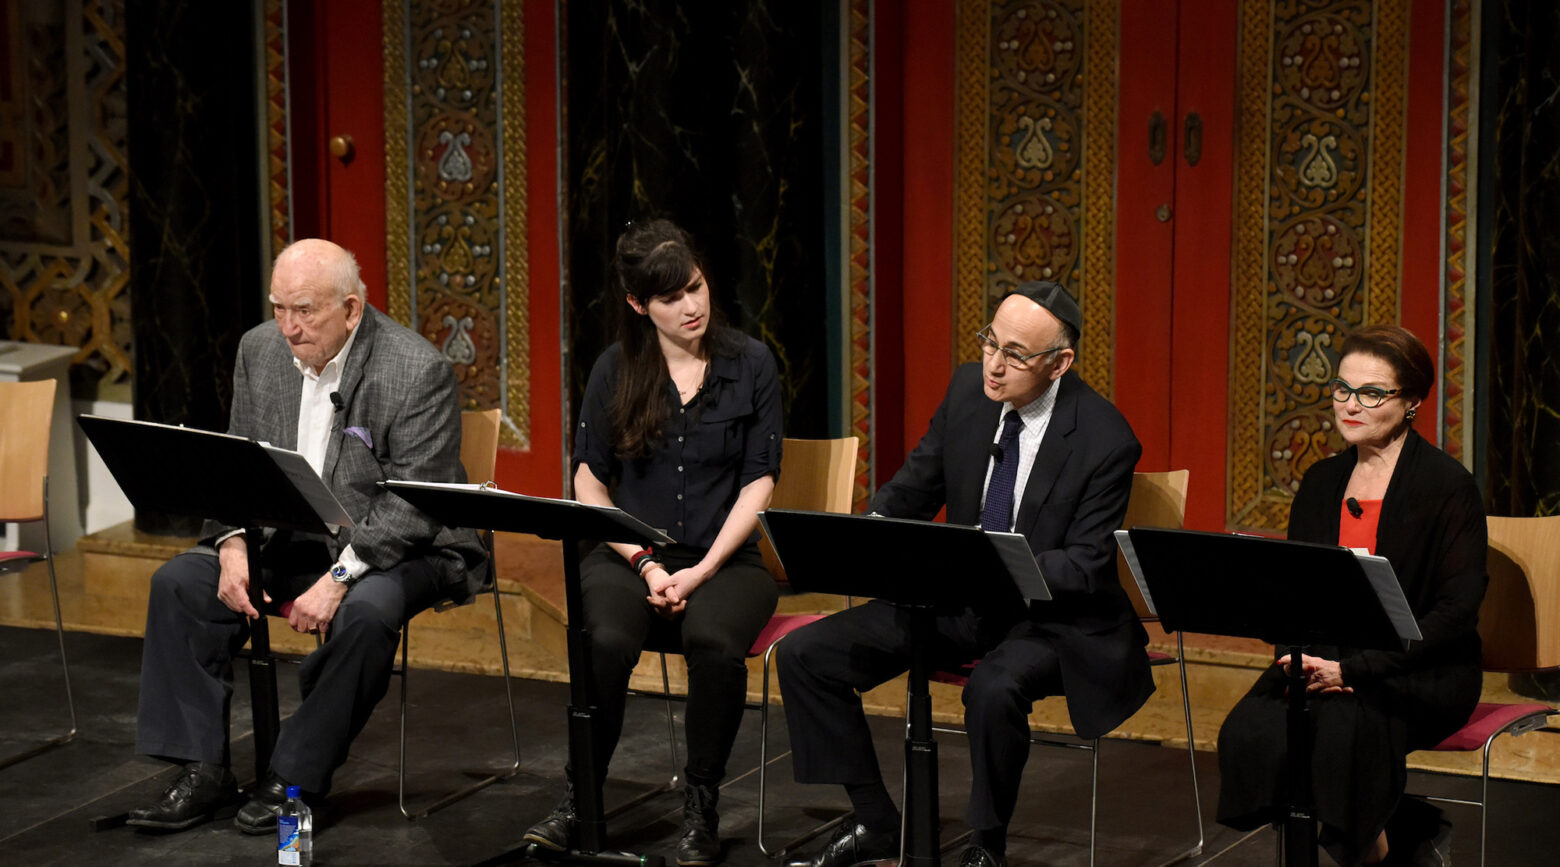 """From left to right: Ed Asner, Liba Vaynberg, Ned Eisenberg and Tovah Feldshuh in a reading of """"The Soap Myth"""" at the B'nai Jeshurun synagogue in New York, Jan. 23, 2019."""